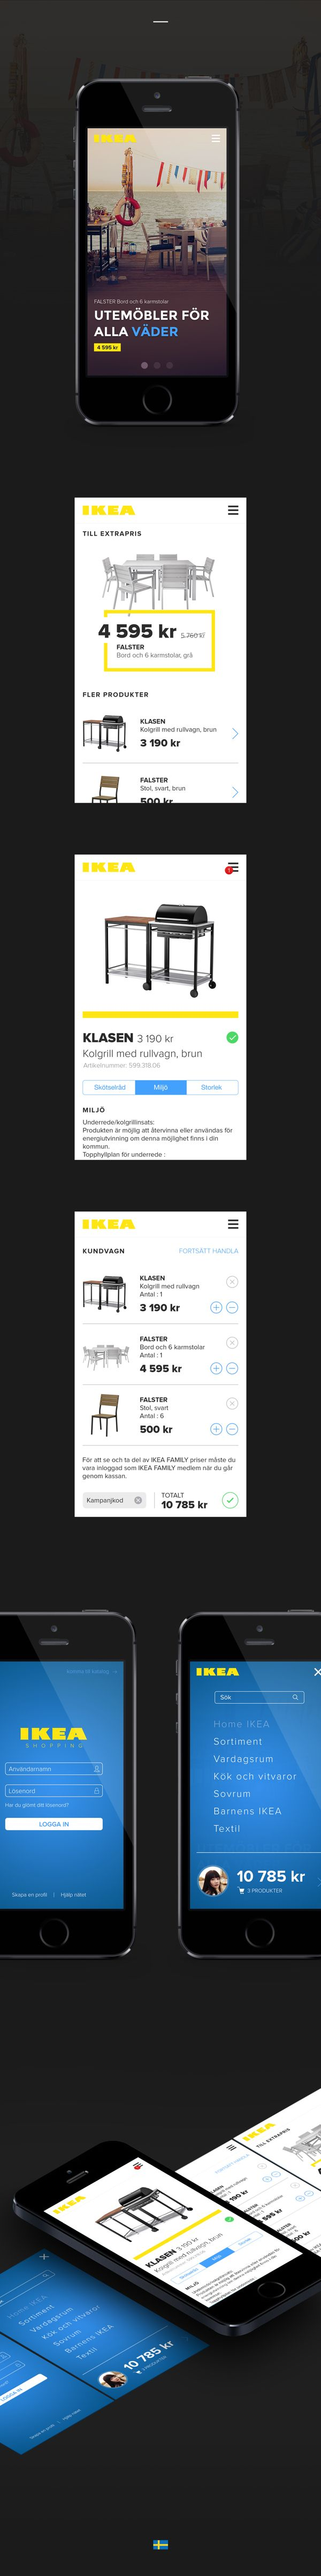 IKEA Mobile App Redesign Concept on Behance